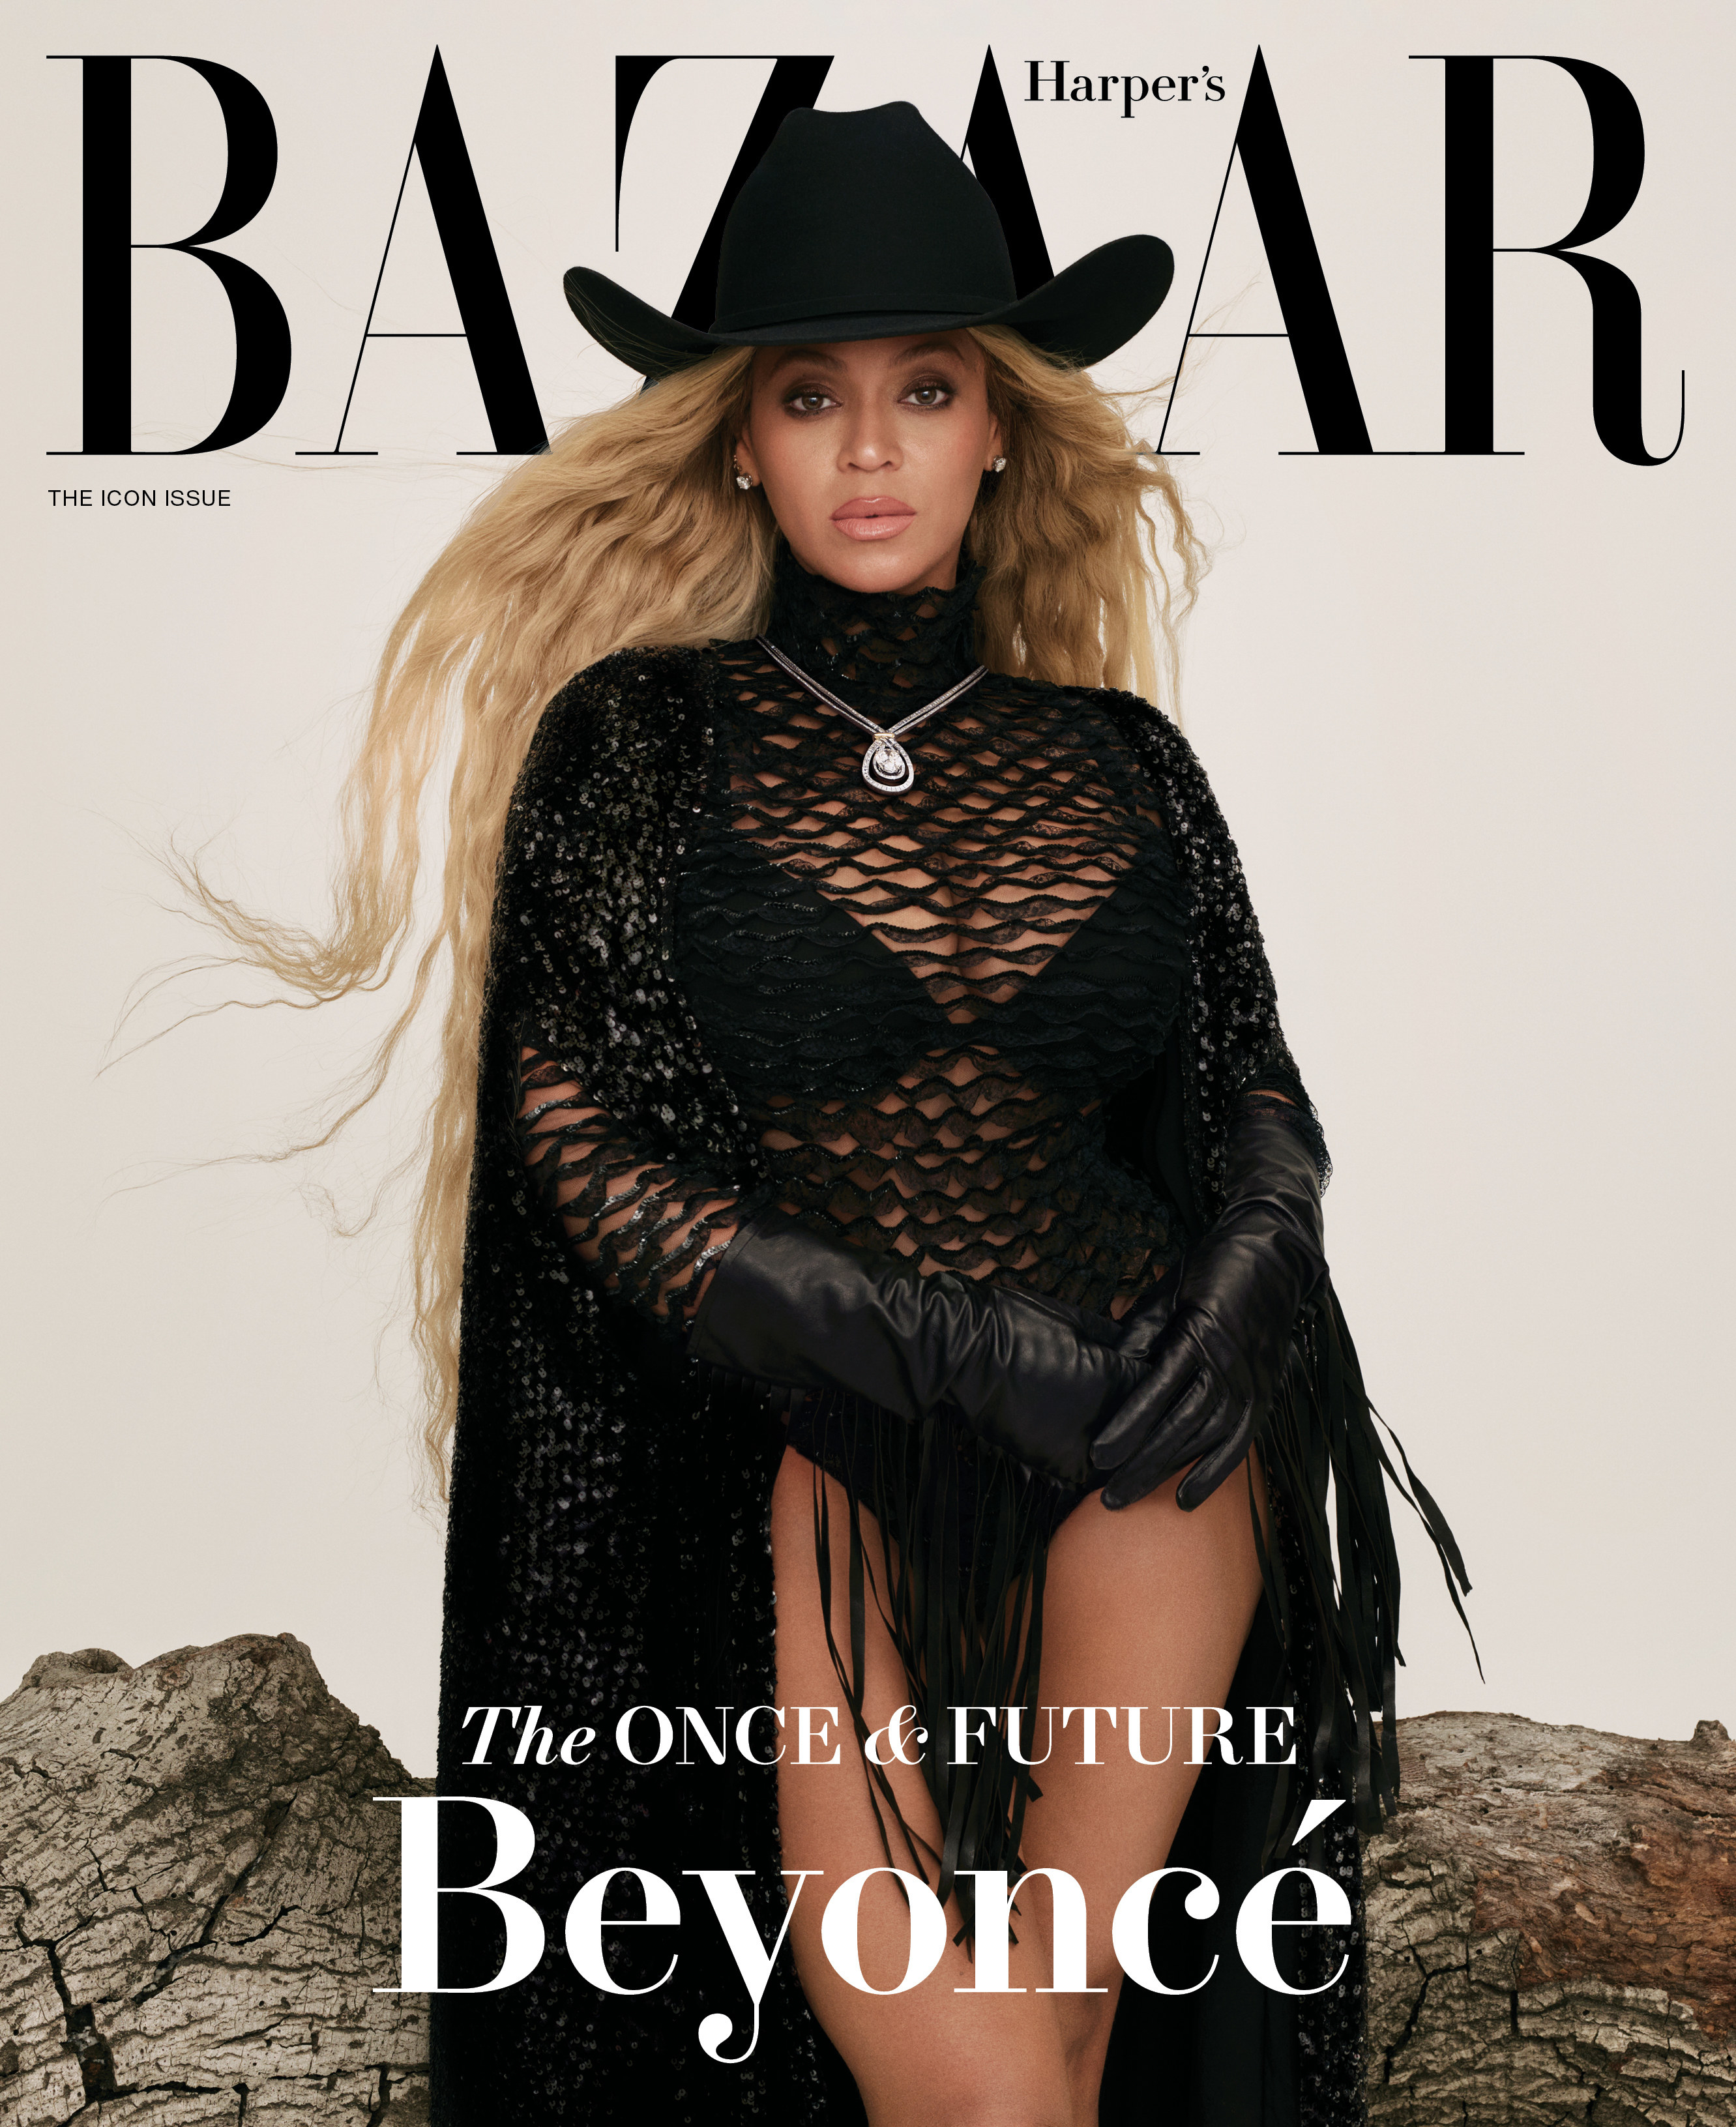 Beyoncé is photographed for the cover of Harper's Bazaar's September 2021 issue